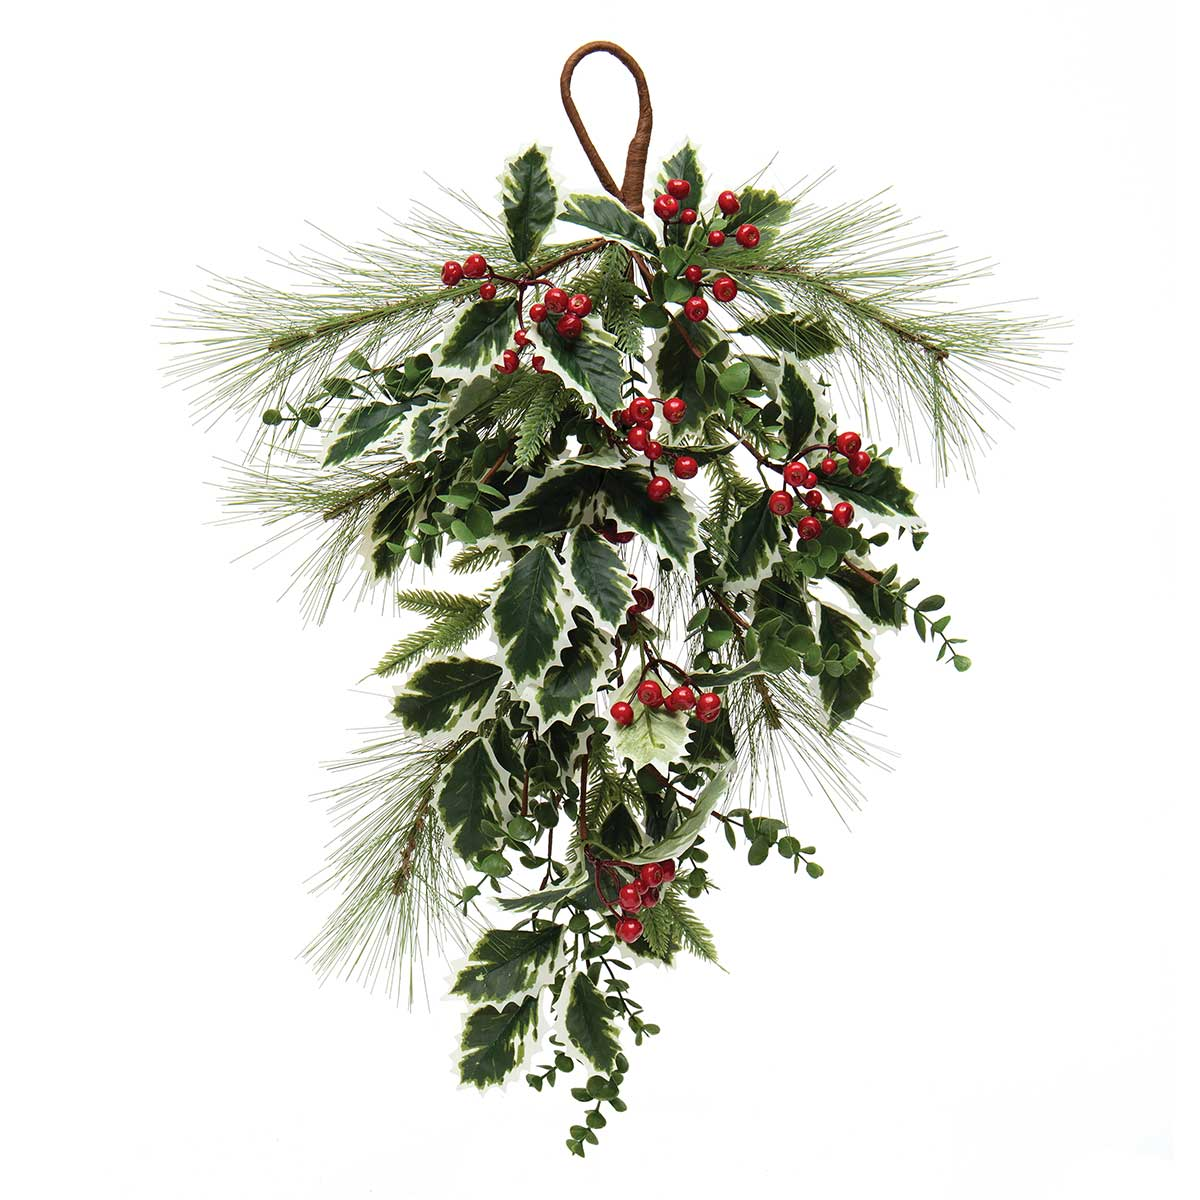 FRESH VARIEGATED HOLLY BOUGH WITH PINE, RED BERRIES, EUCALYPTUS